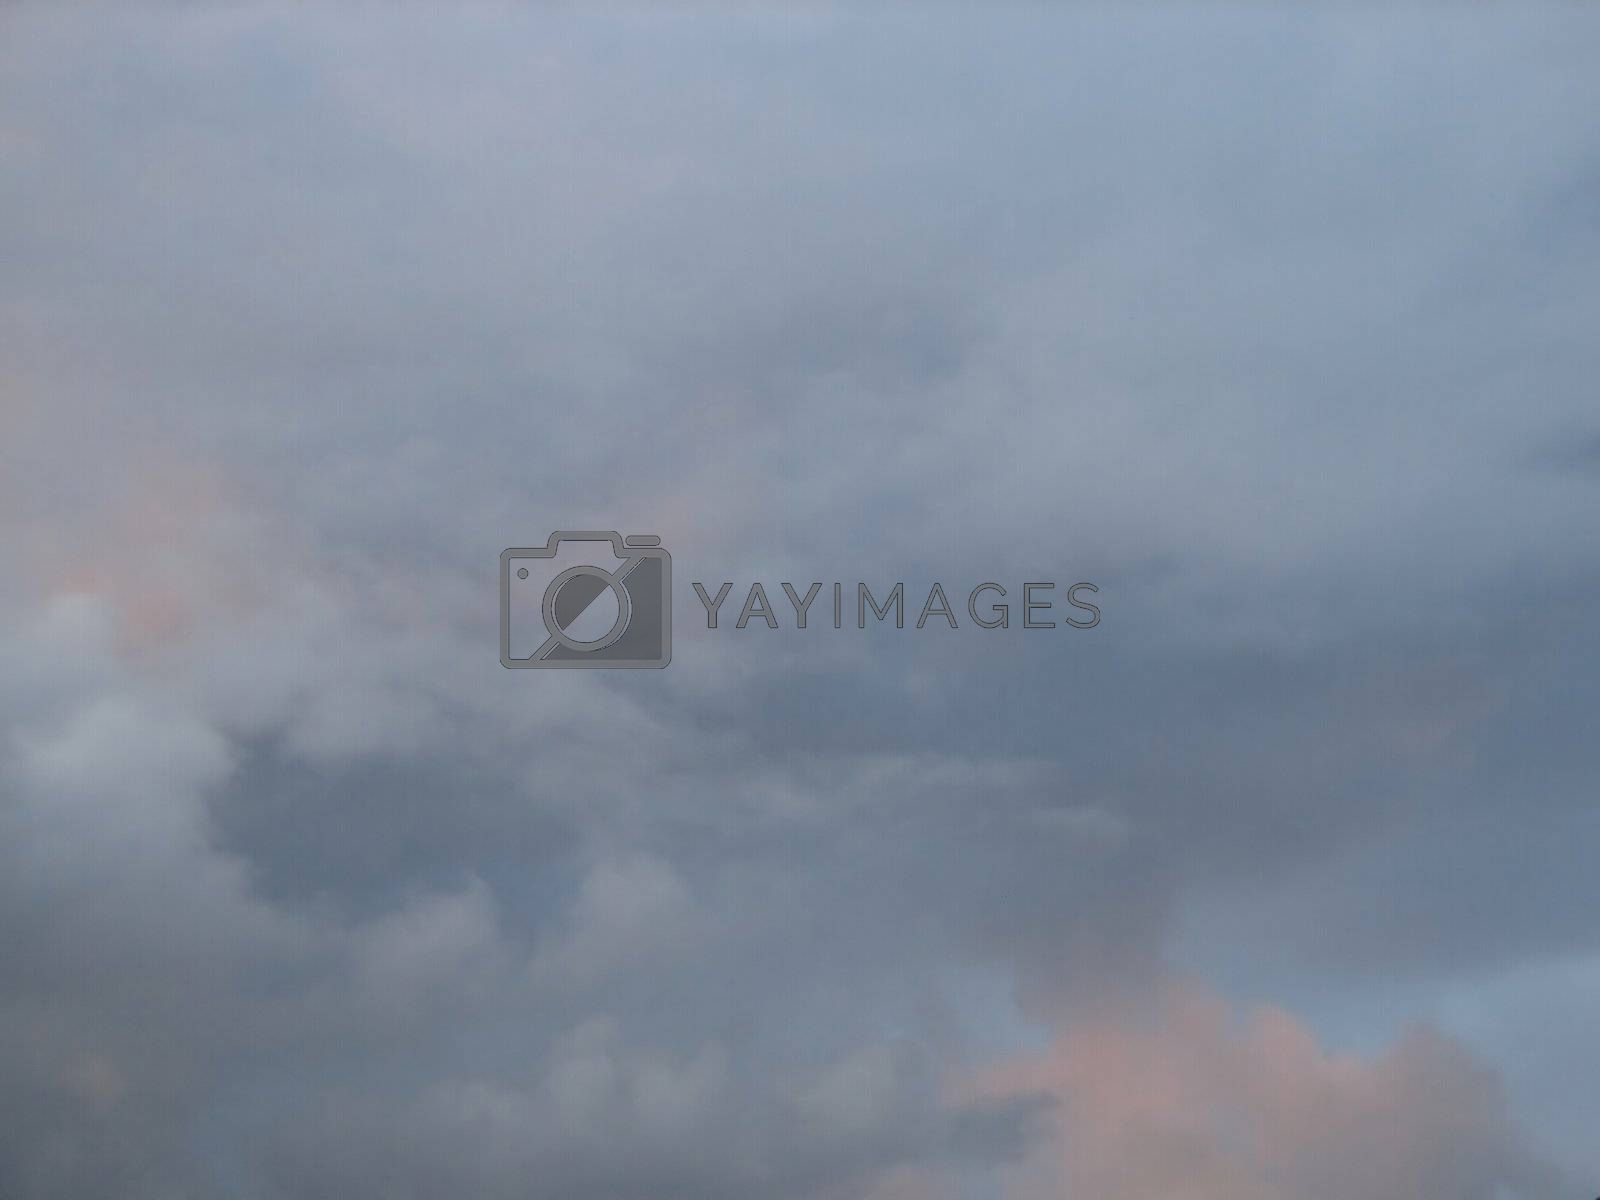 Sky with clouds, usable as background